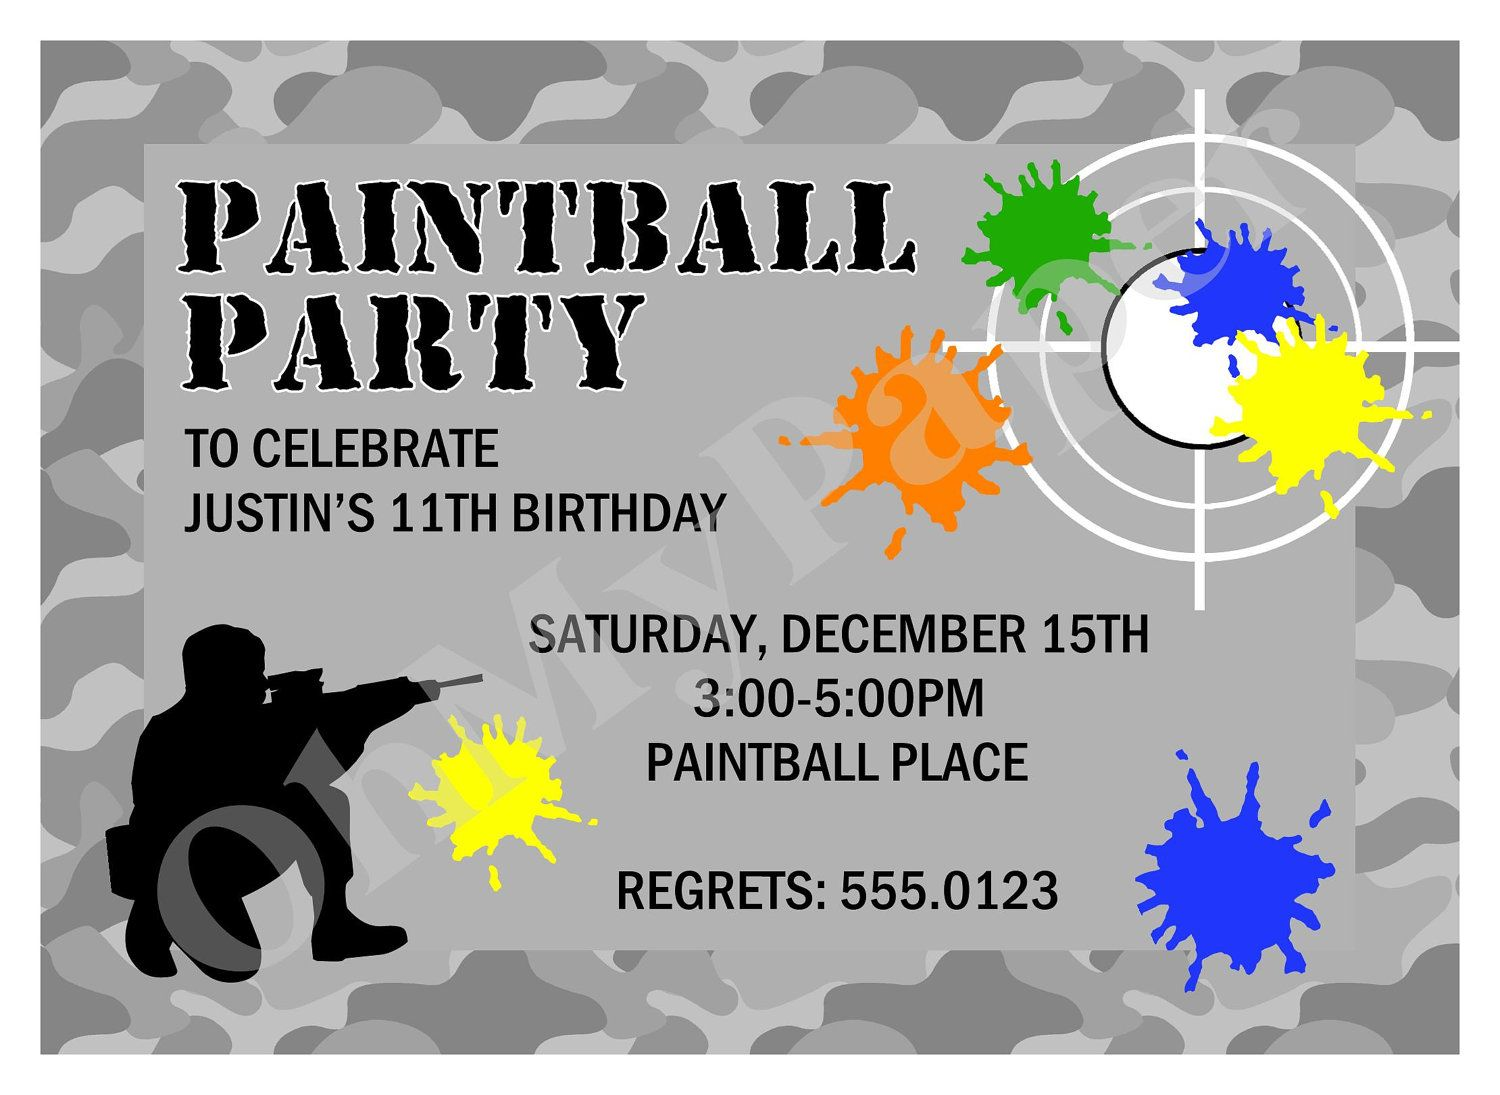 Free Paintball Party Invitation Template | Paintball Party 2015 ...